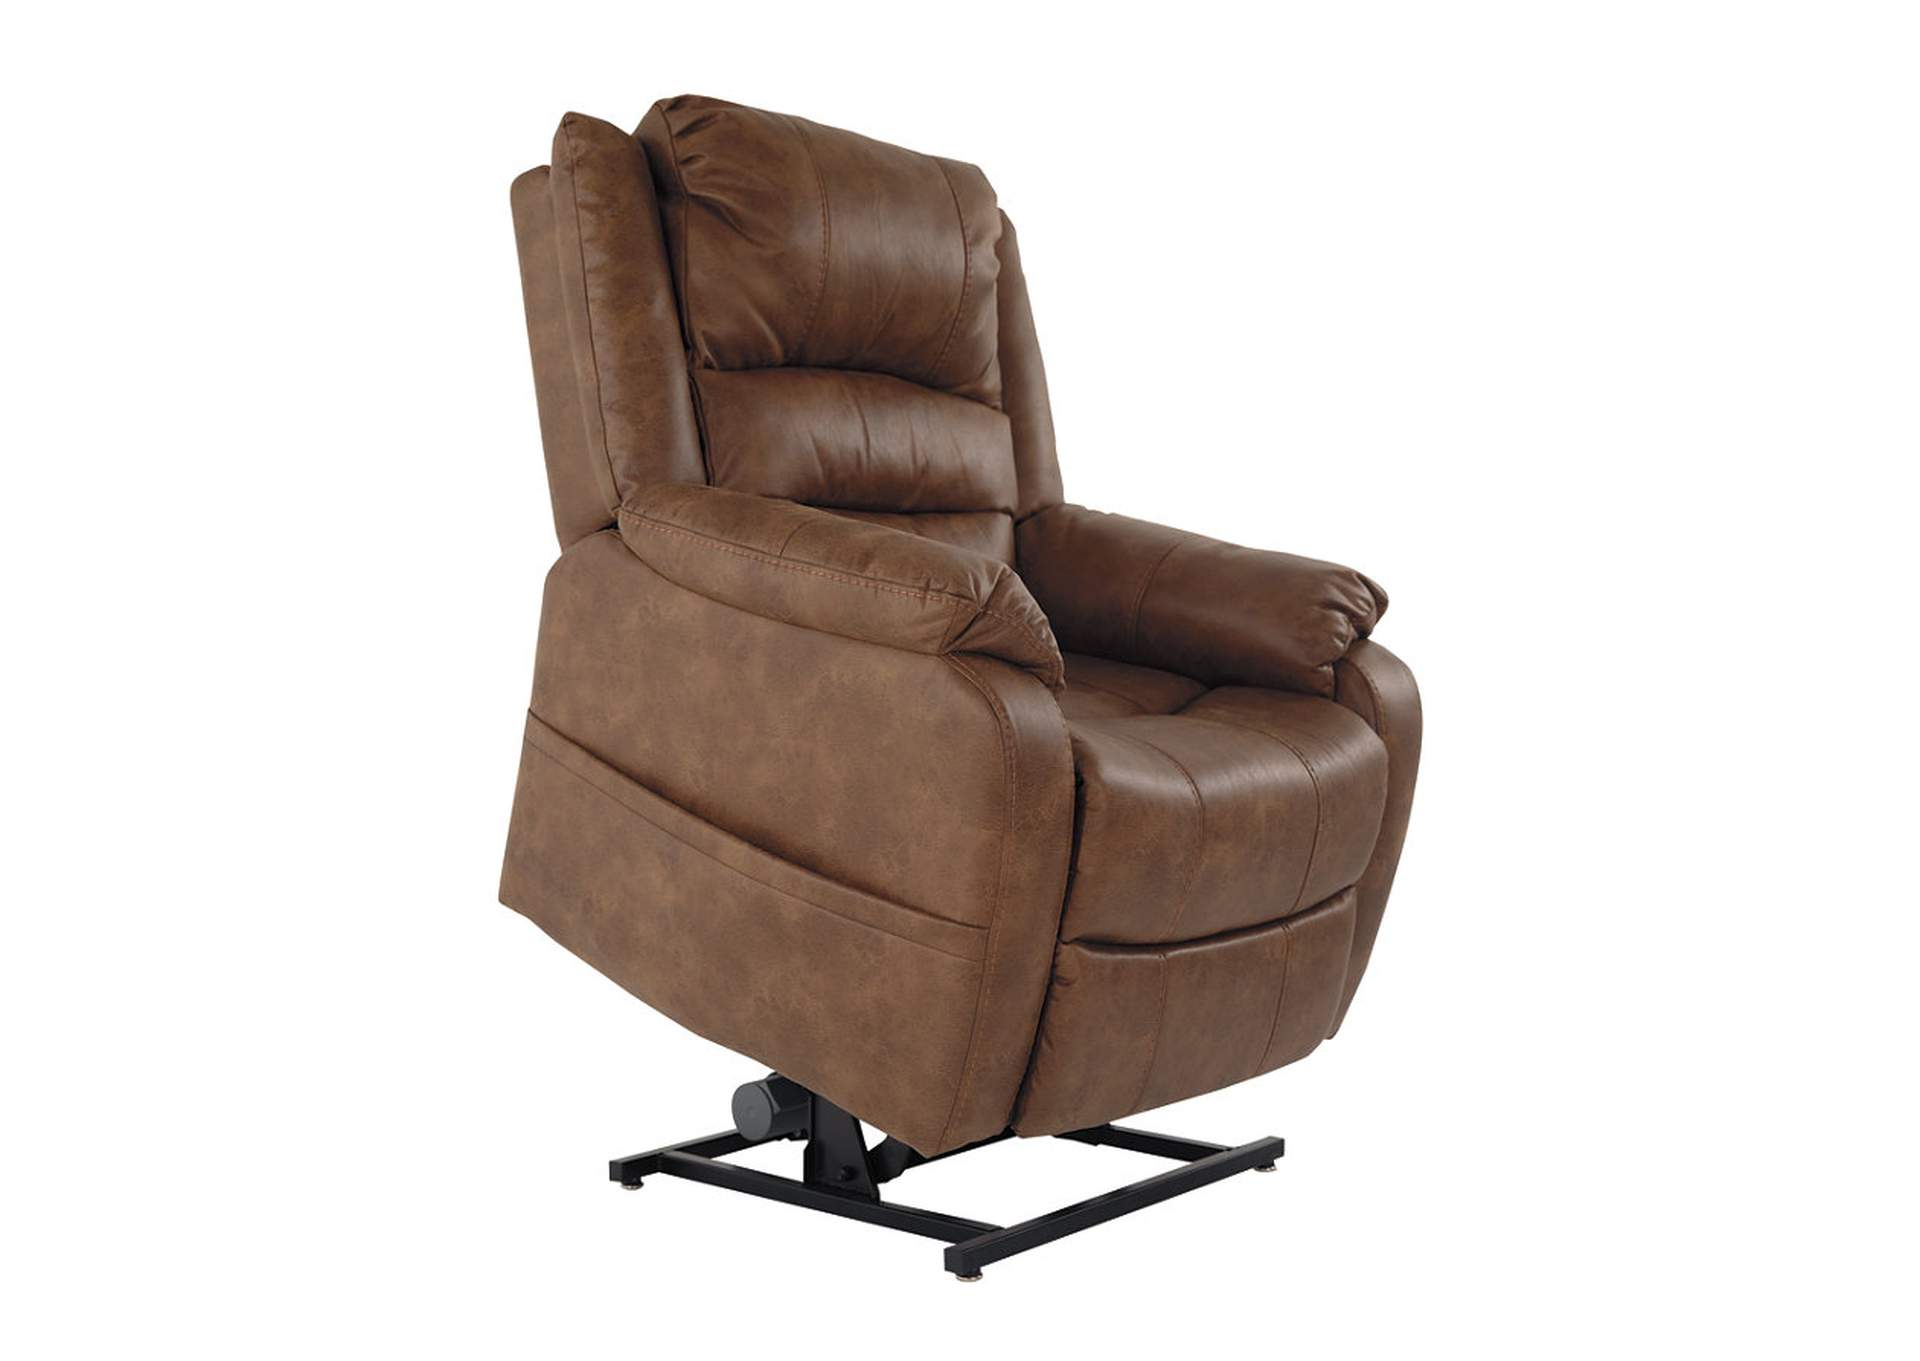 Yandel Saddle Power Lift Recliner,Signature Design By Ashley